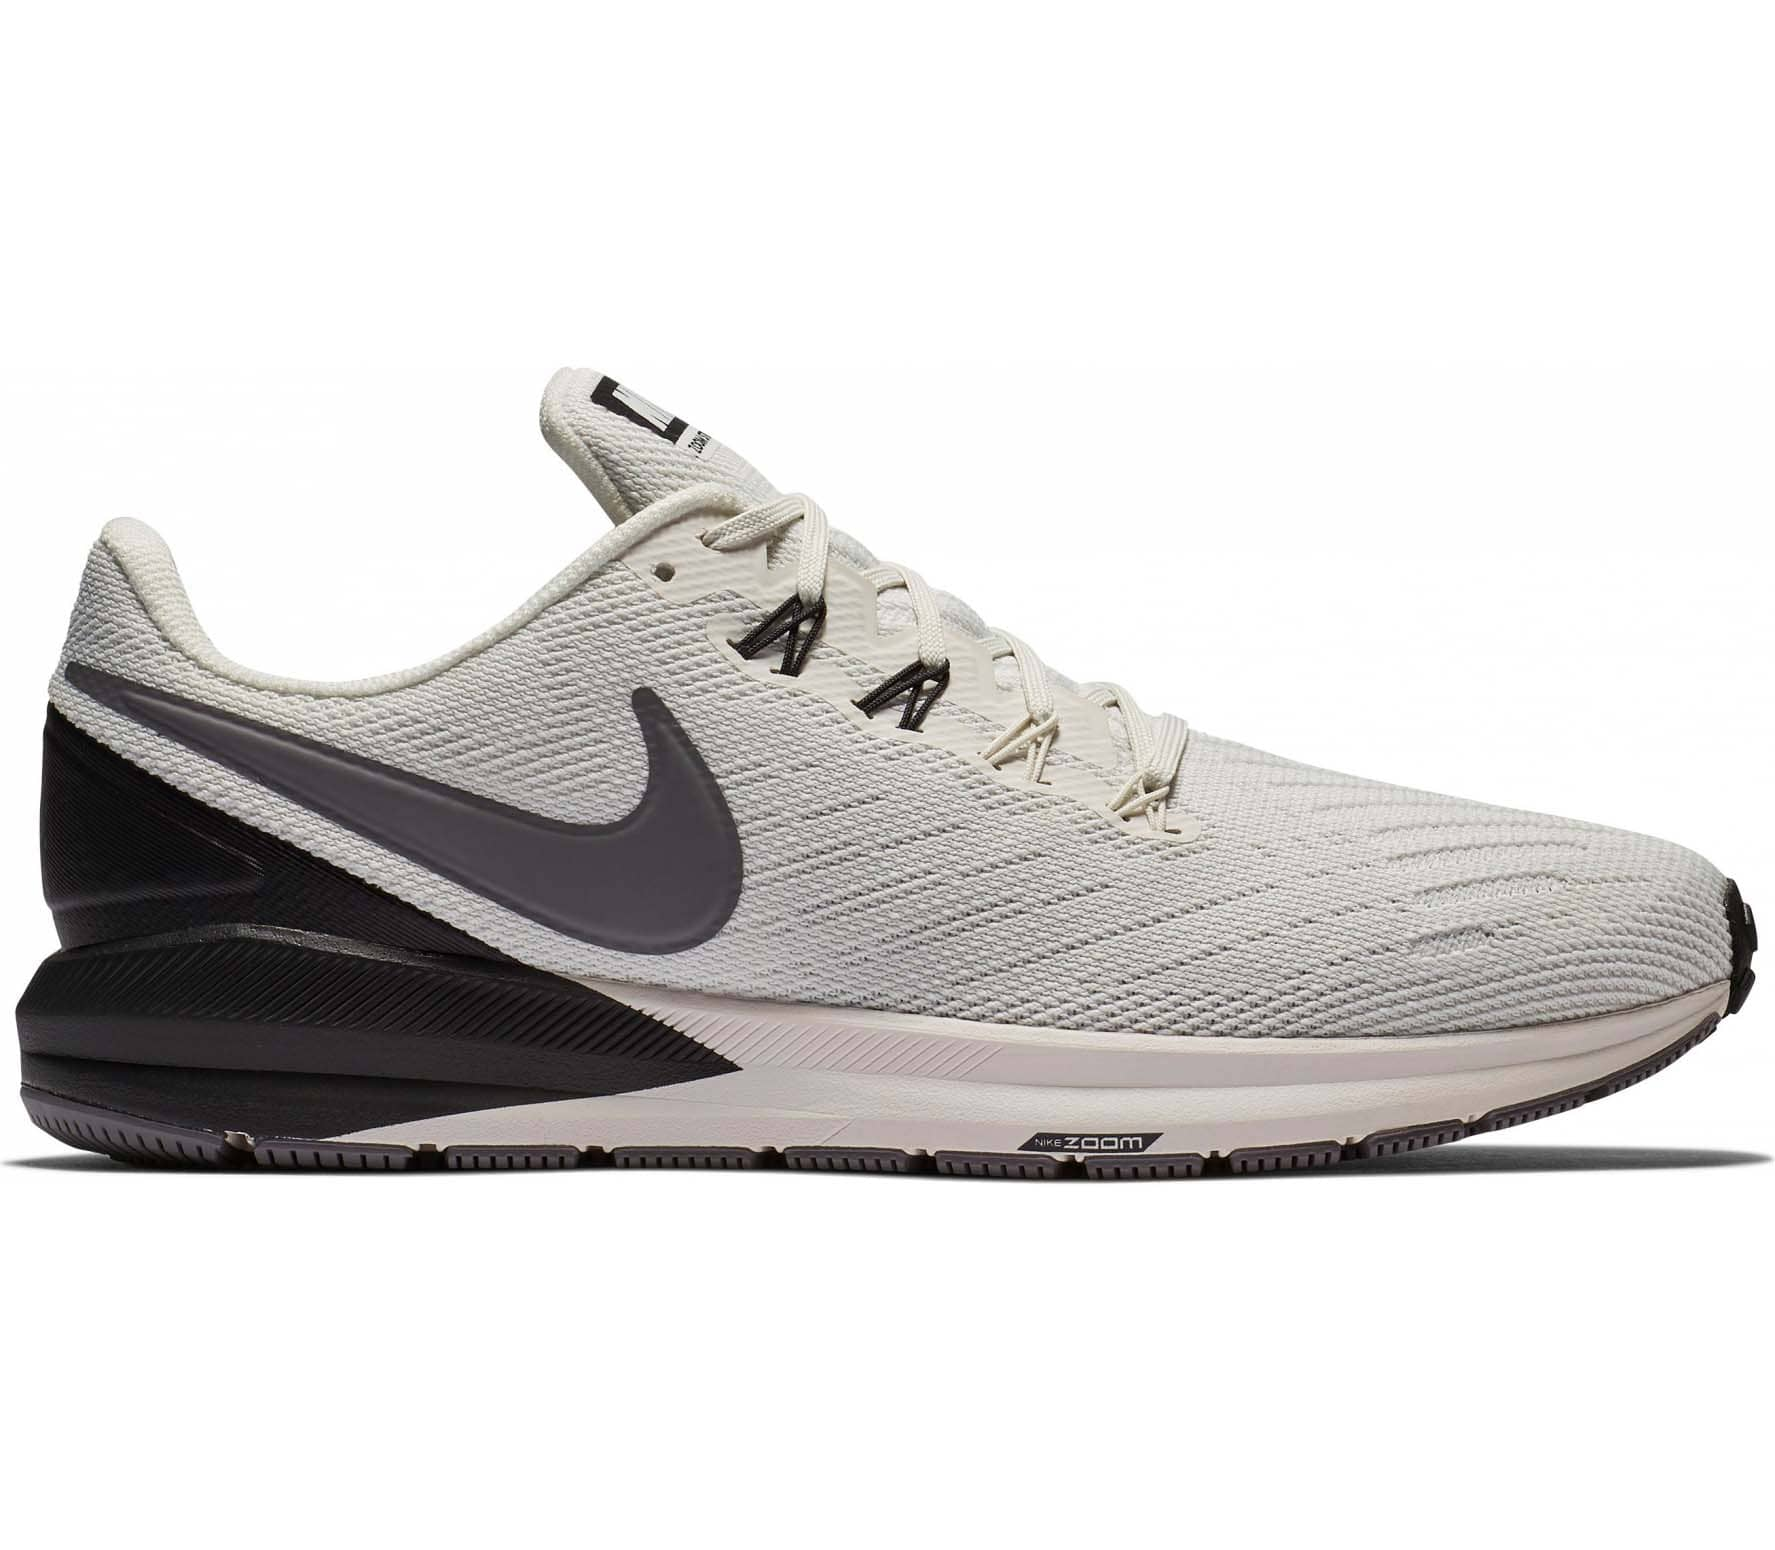 new arrival 7160e 910d8 Nike Air Zoom Structure 22 Men Running Shoes white